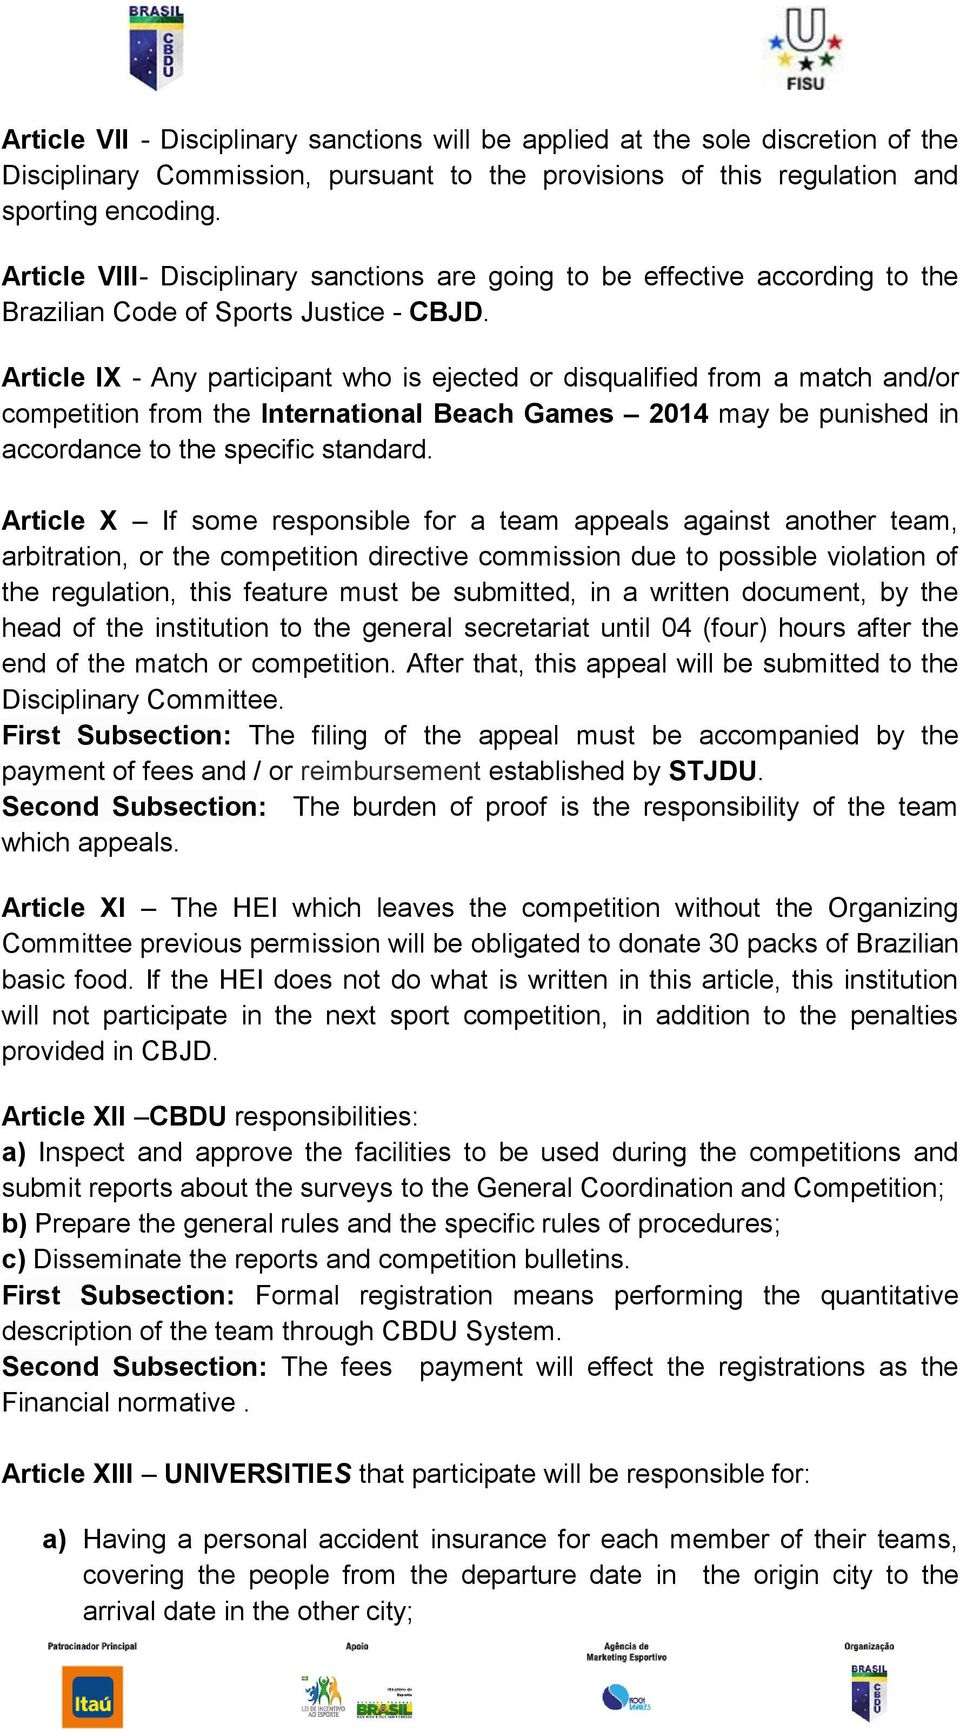 Article IX - Any participant who is ejected or disqualified from a match and/or competition from the International Beach Games 2014 may be punished in accordance to the specific standard.